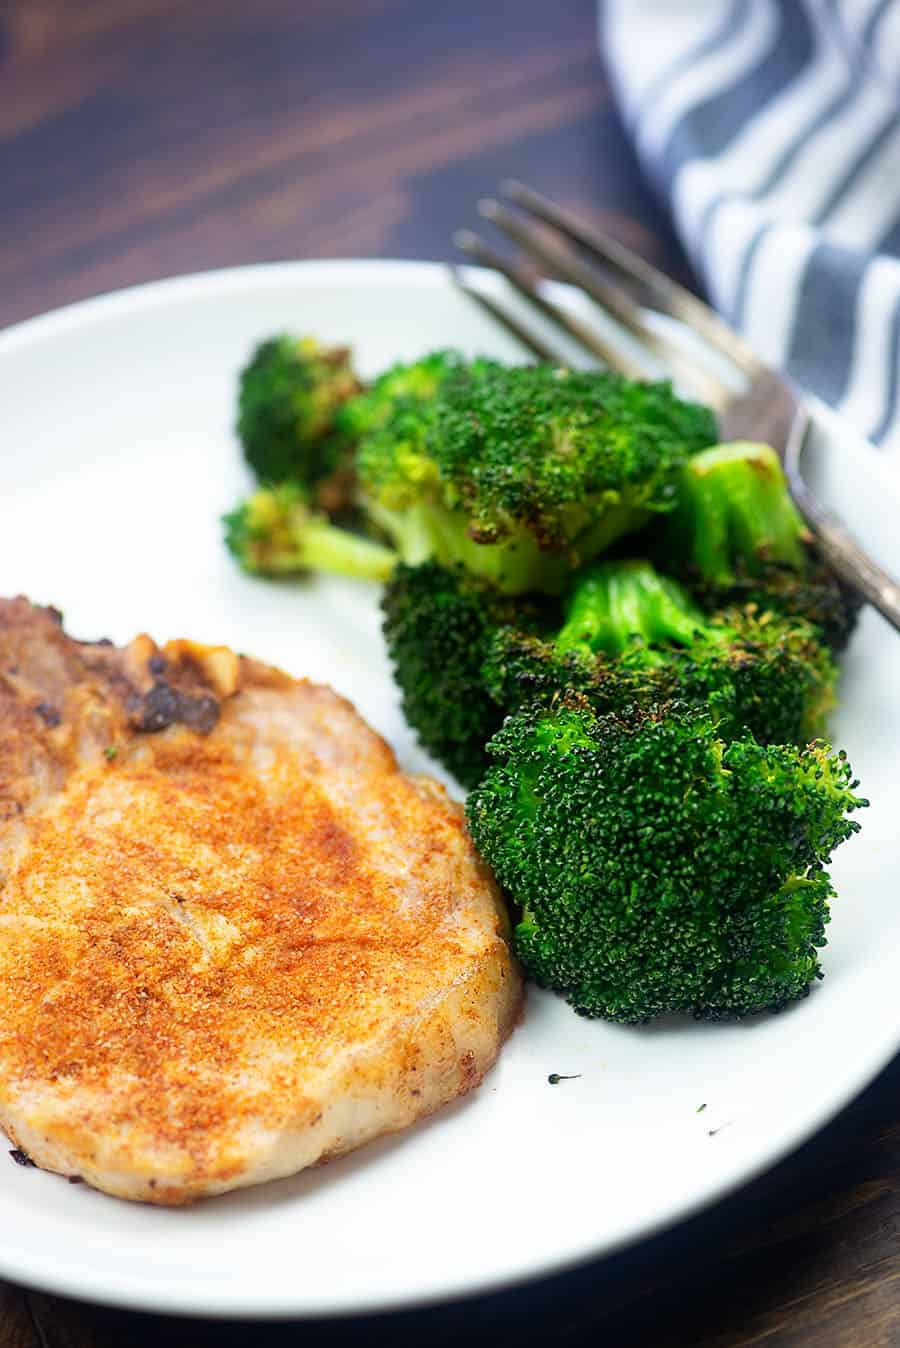 pork chops and broccoli on a white plate with a fork